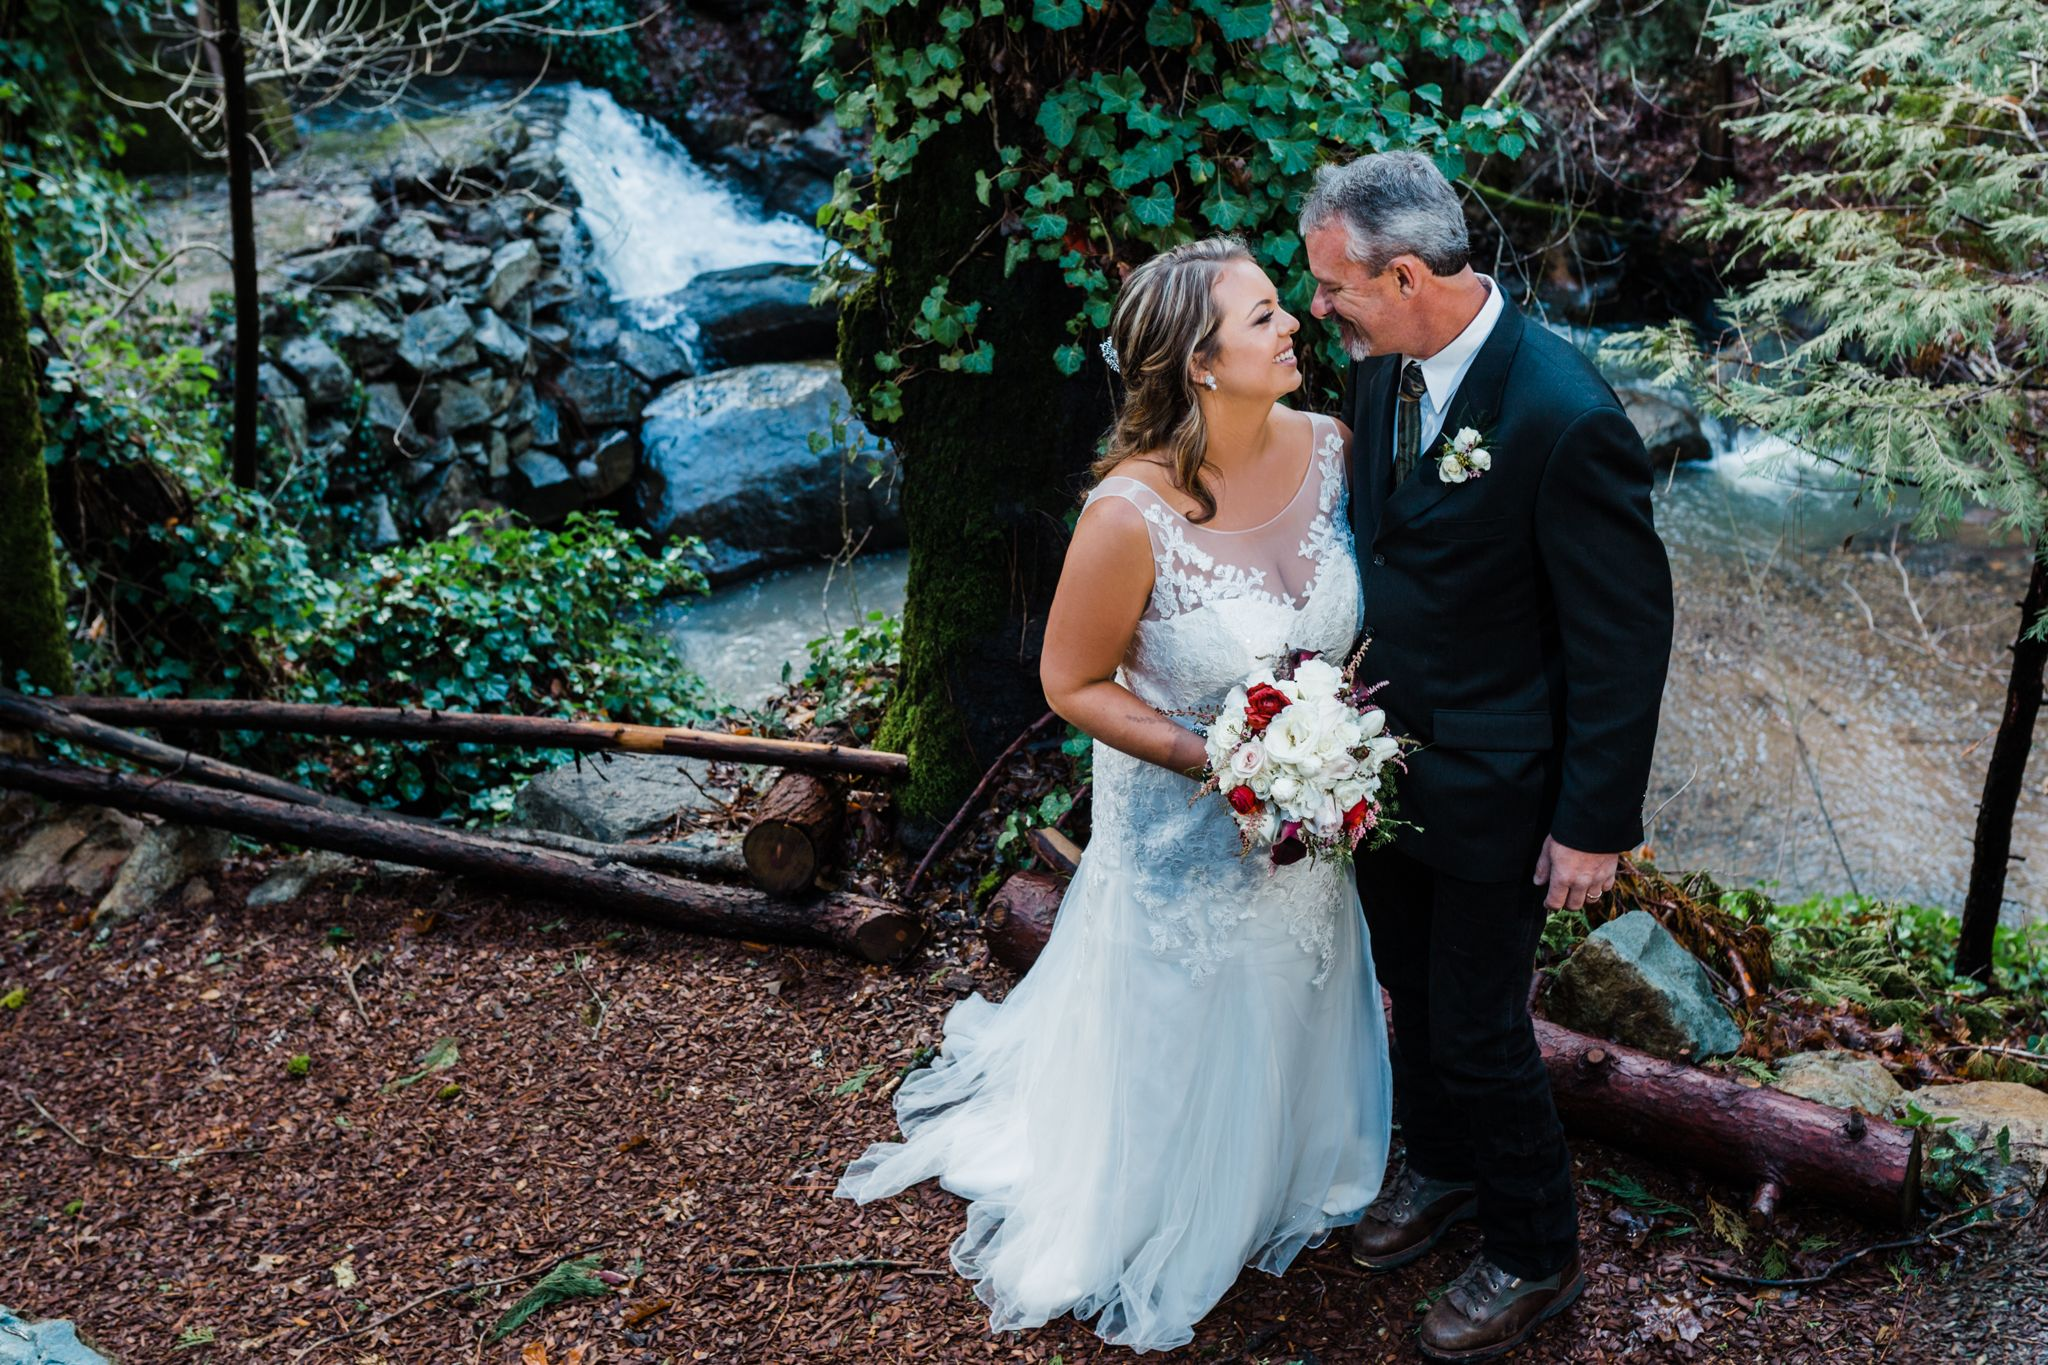 wedding couple in nevada city, nevada county.